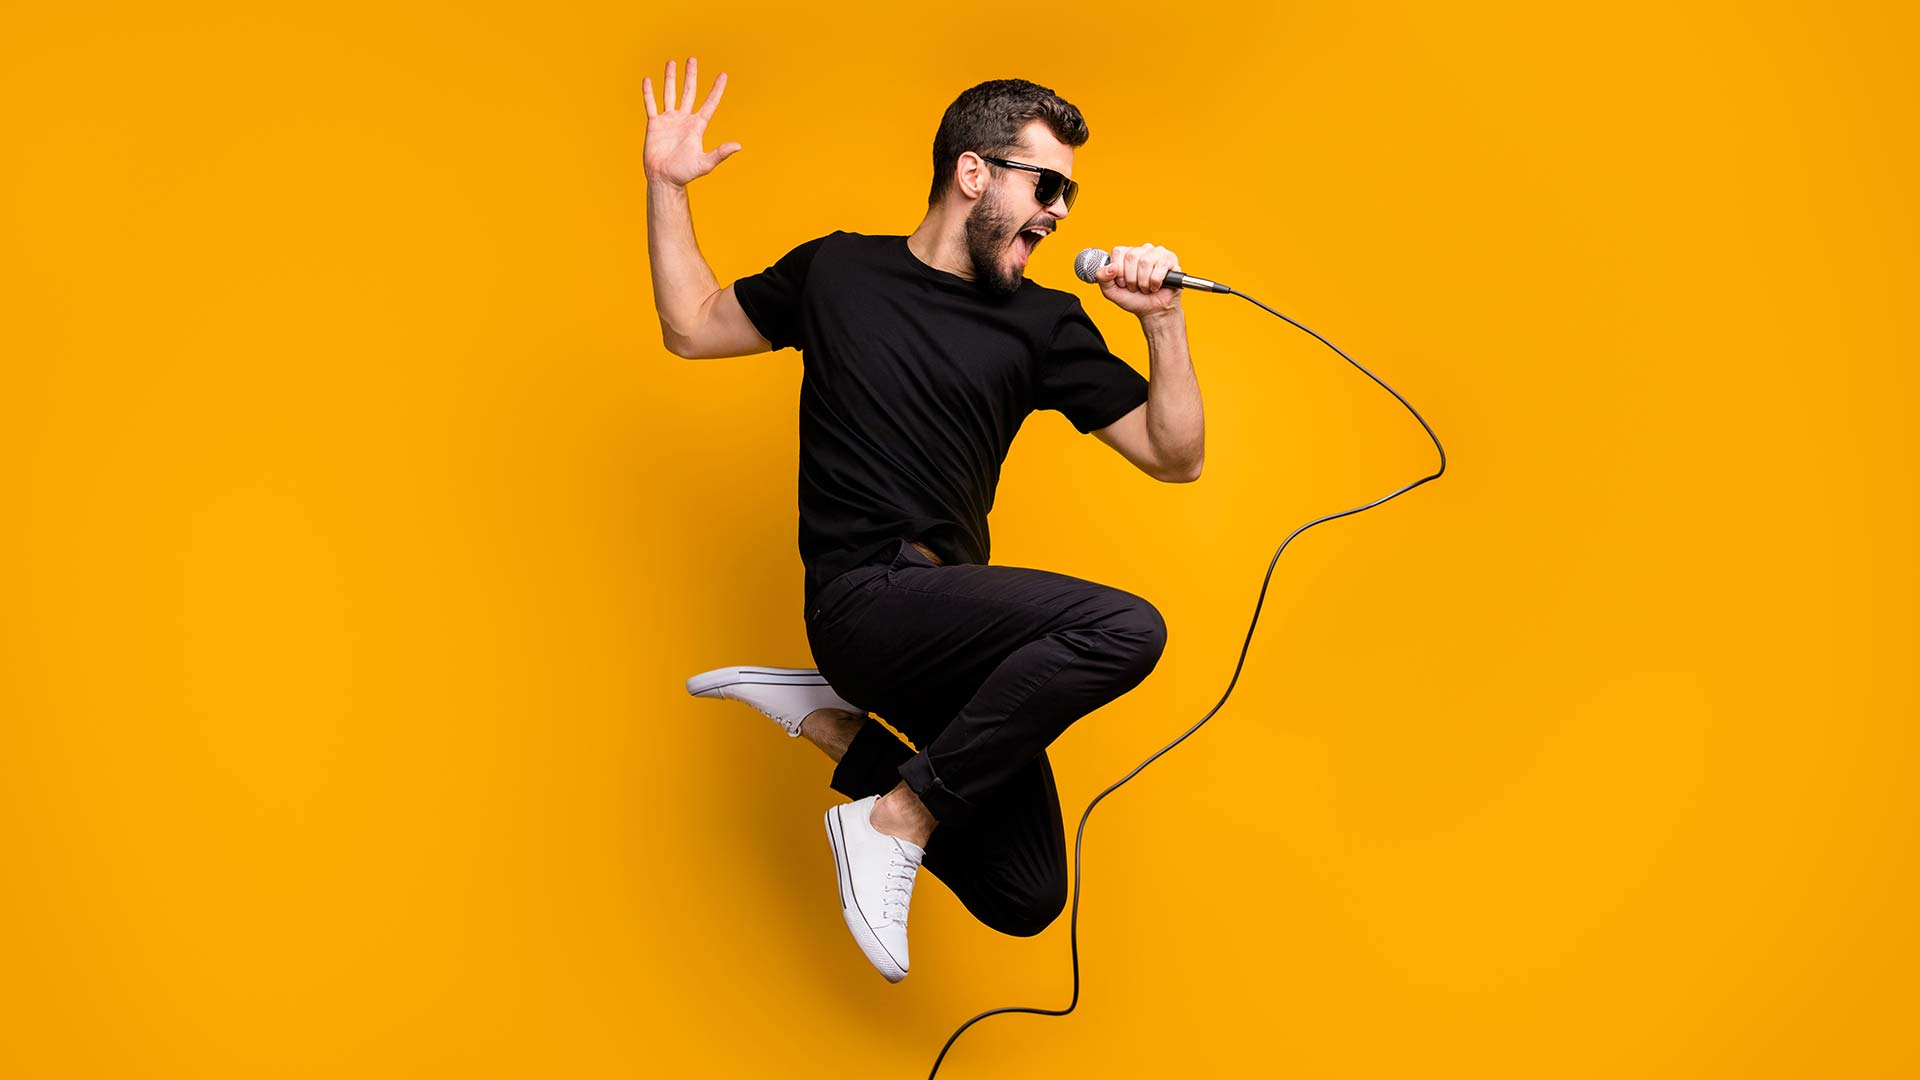 Man jumping in air with microphone and sunglasses on yellow background